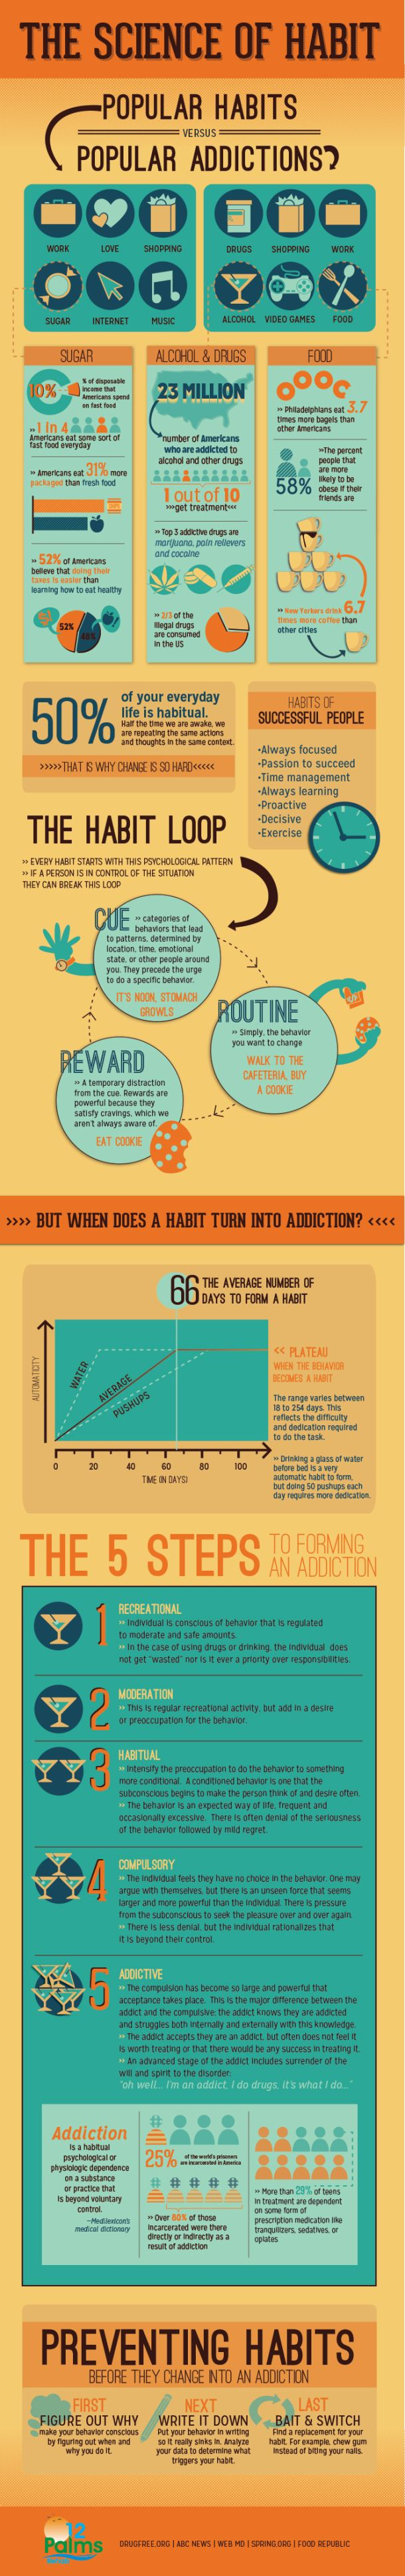 The science of habit - what the difference between a constructive habit or a destructive addiction (it's a thin line)